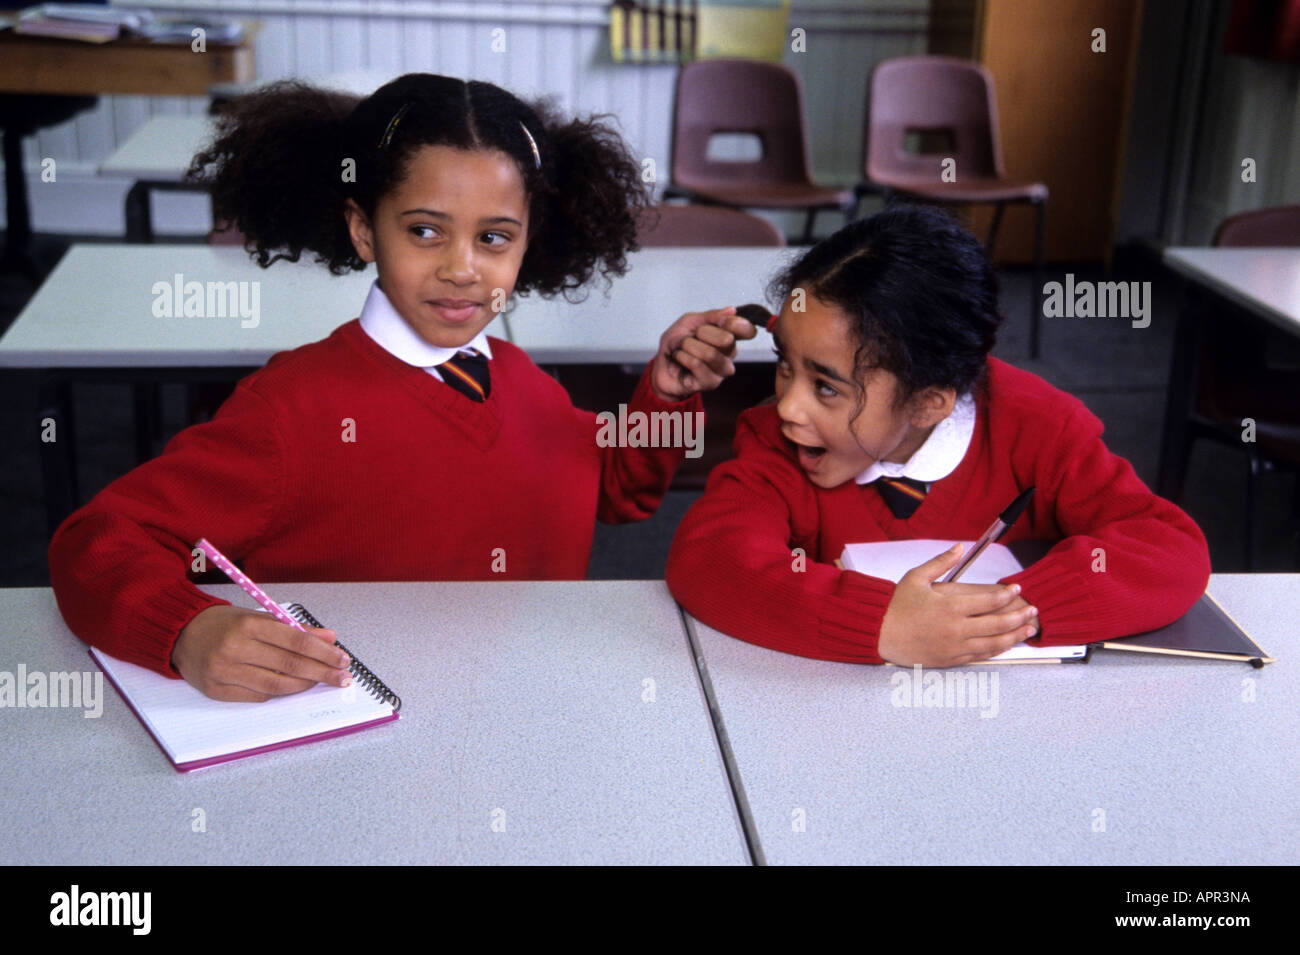 Two little black girls in a classroom.  One is pulling the others hair. - Stock Image